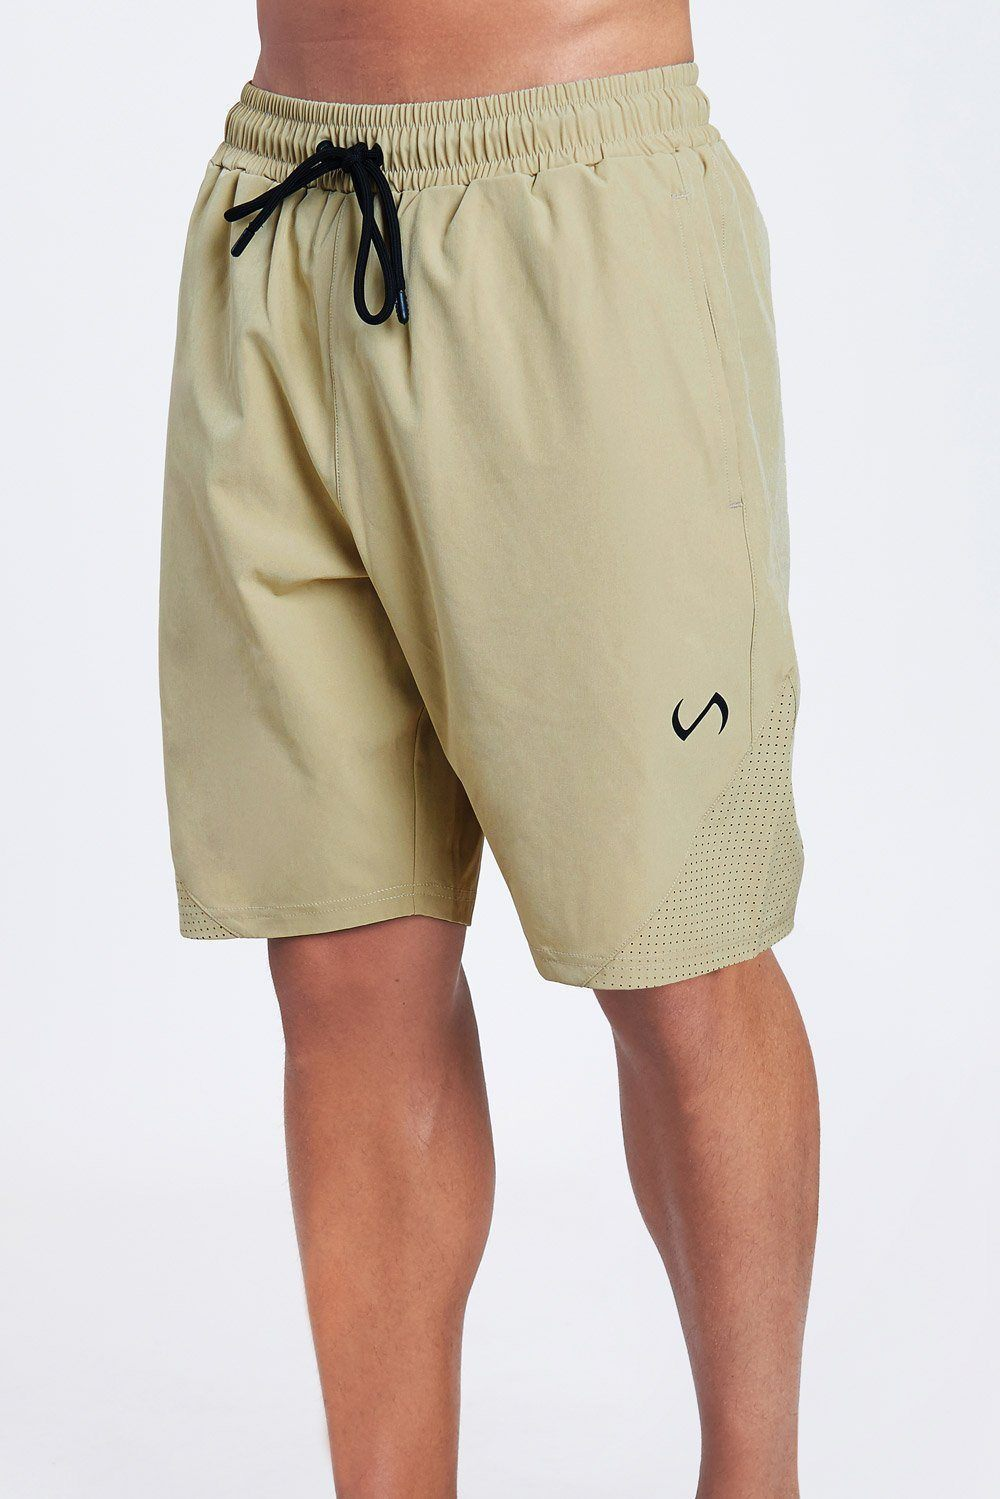 TLF Hero Shorts - Shorts - TLF Apparel | Take Life Further